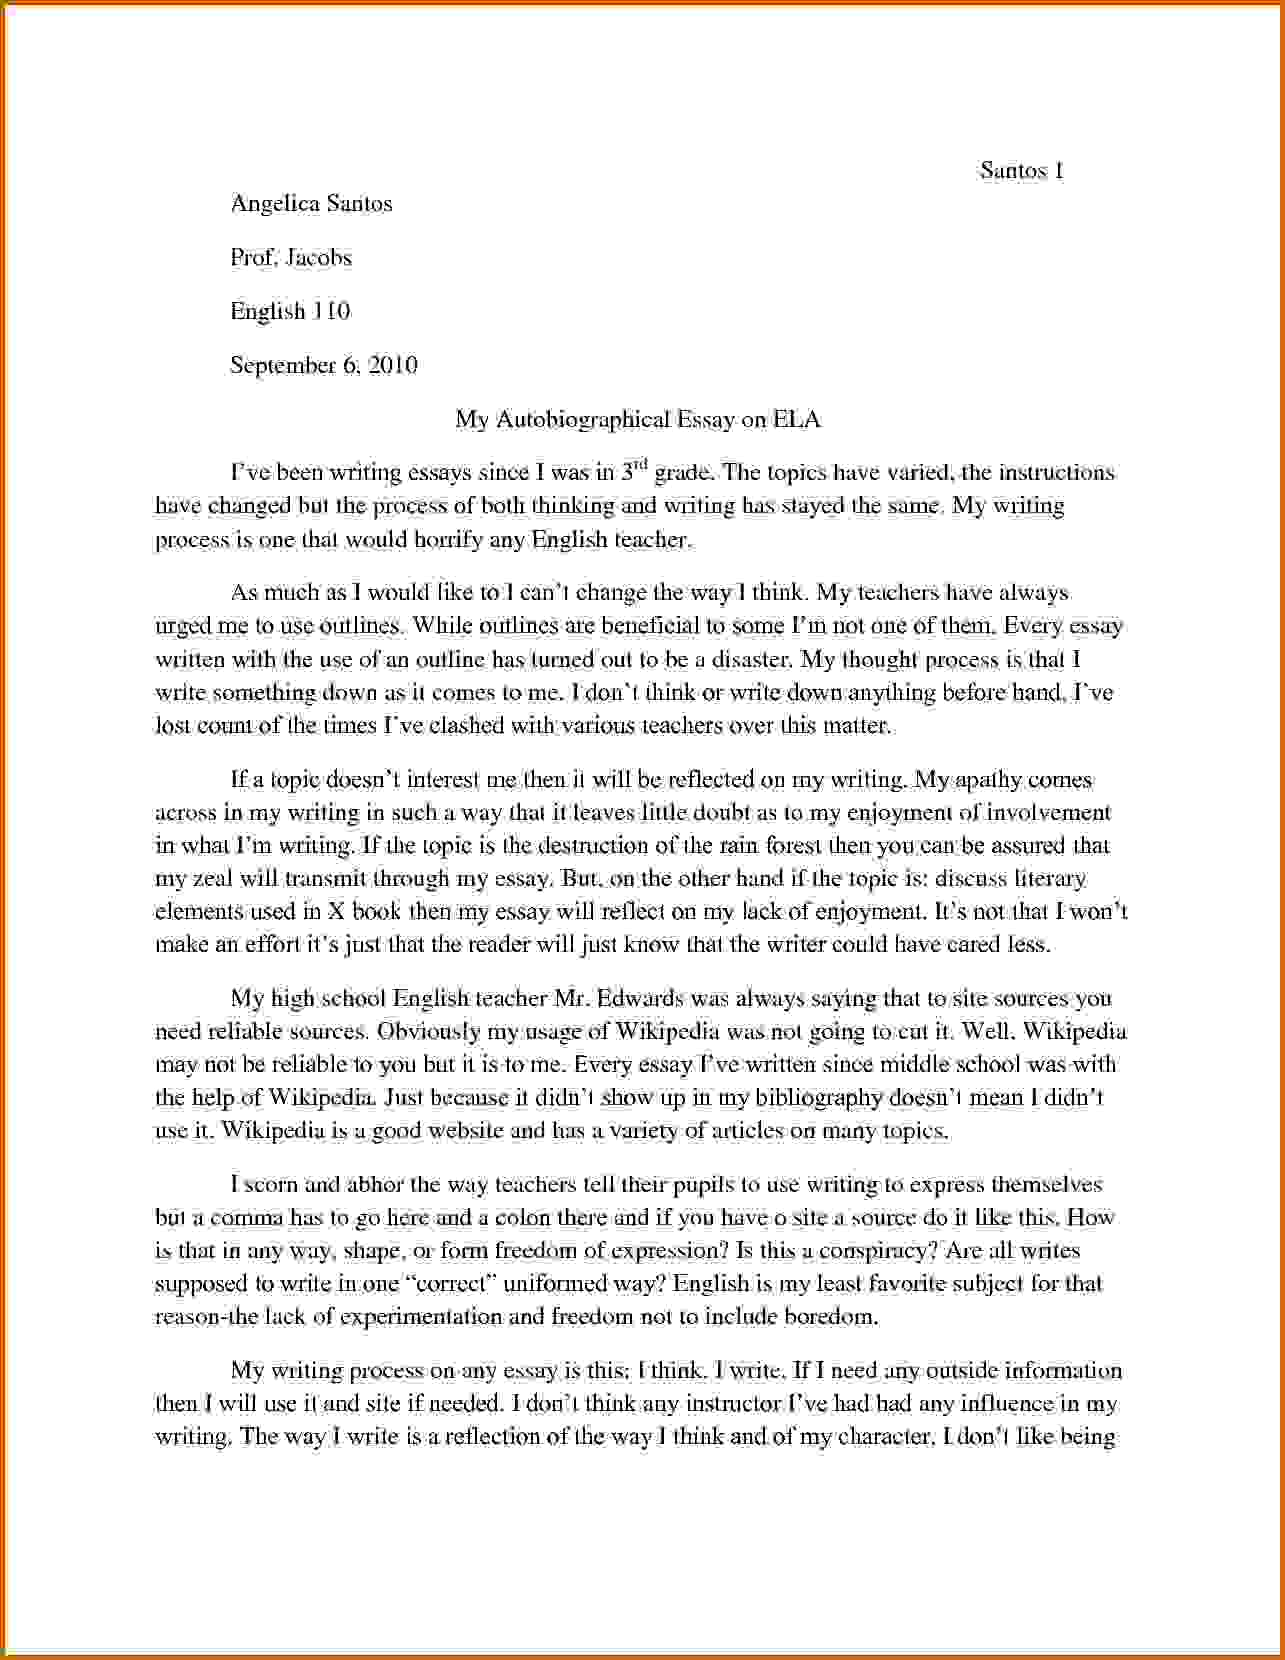 010 essay example how to write an autobiography on school 88278